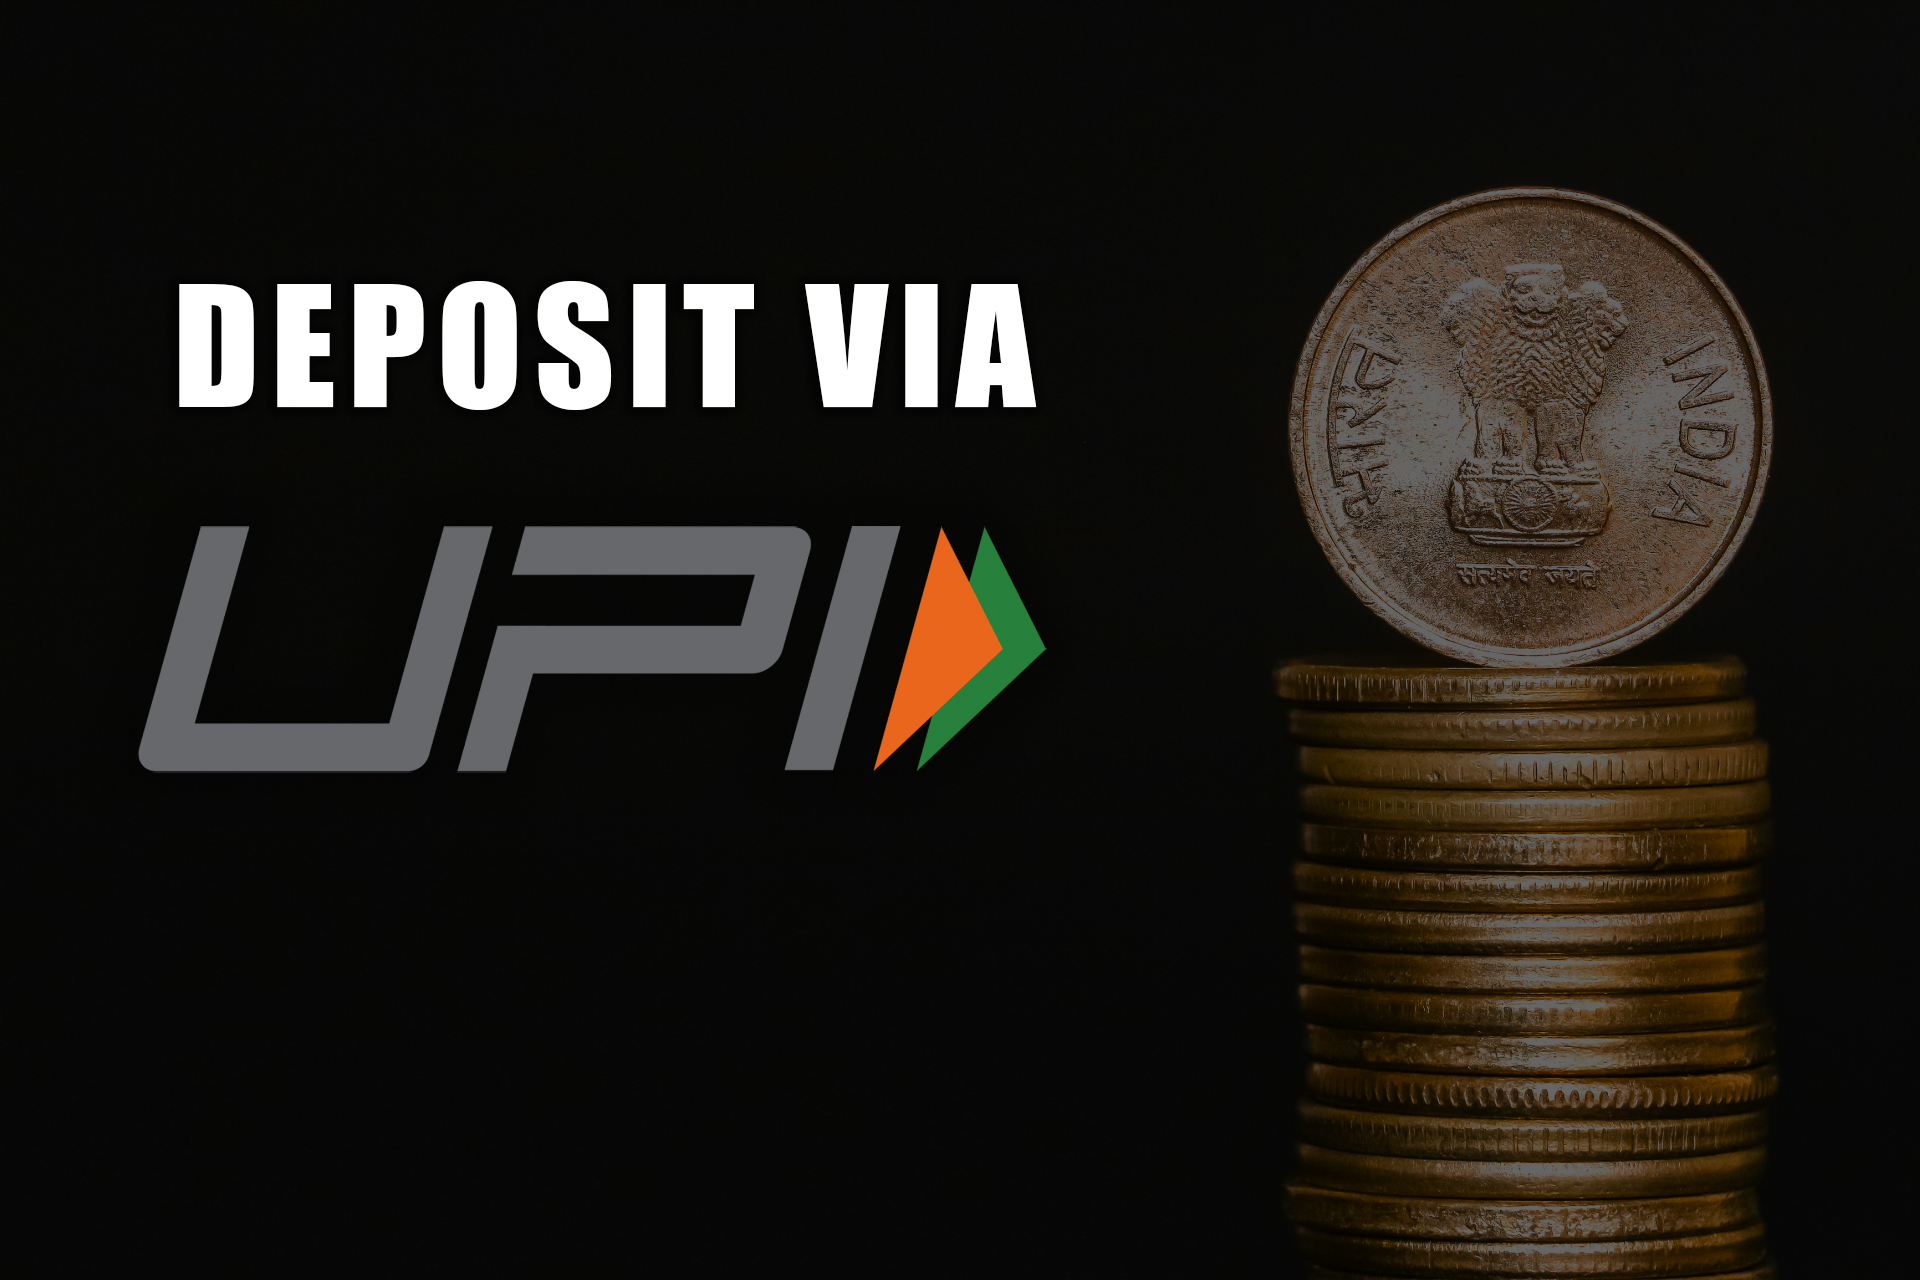 UPI is considered the most convenient option for depositing.